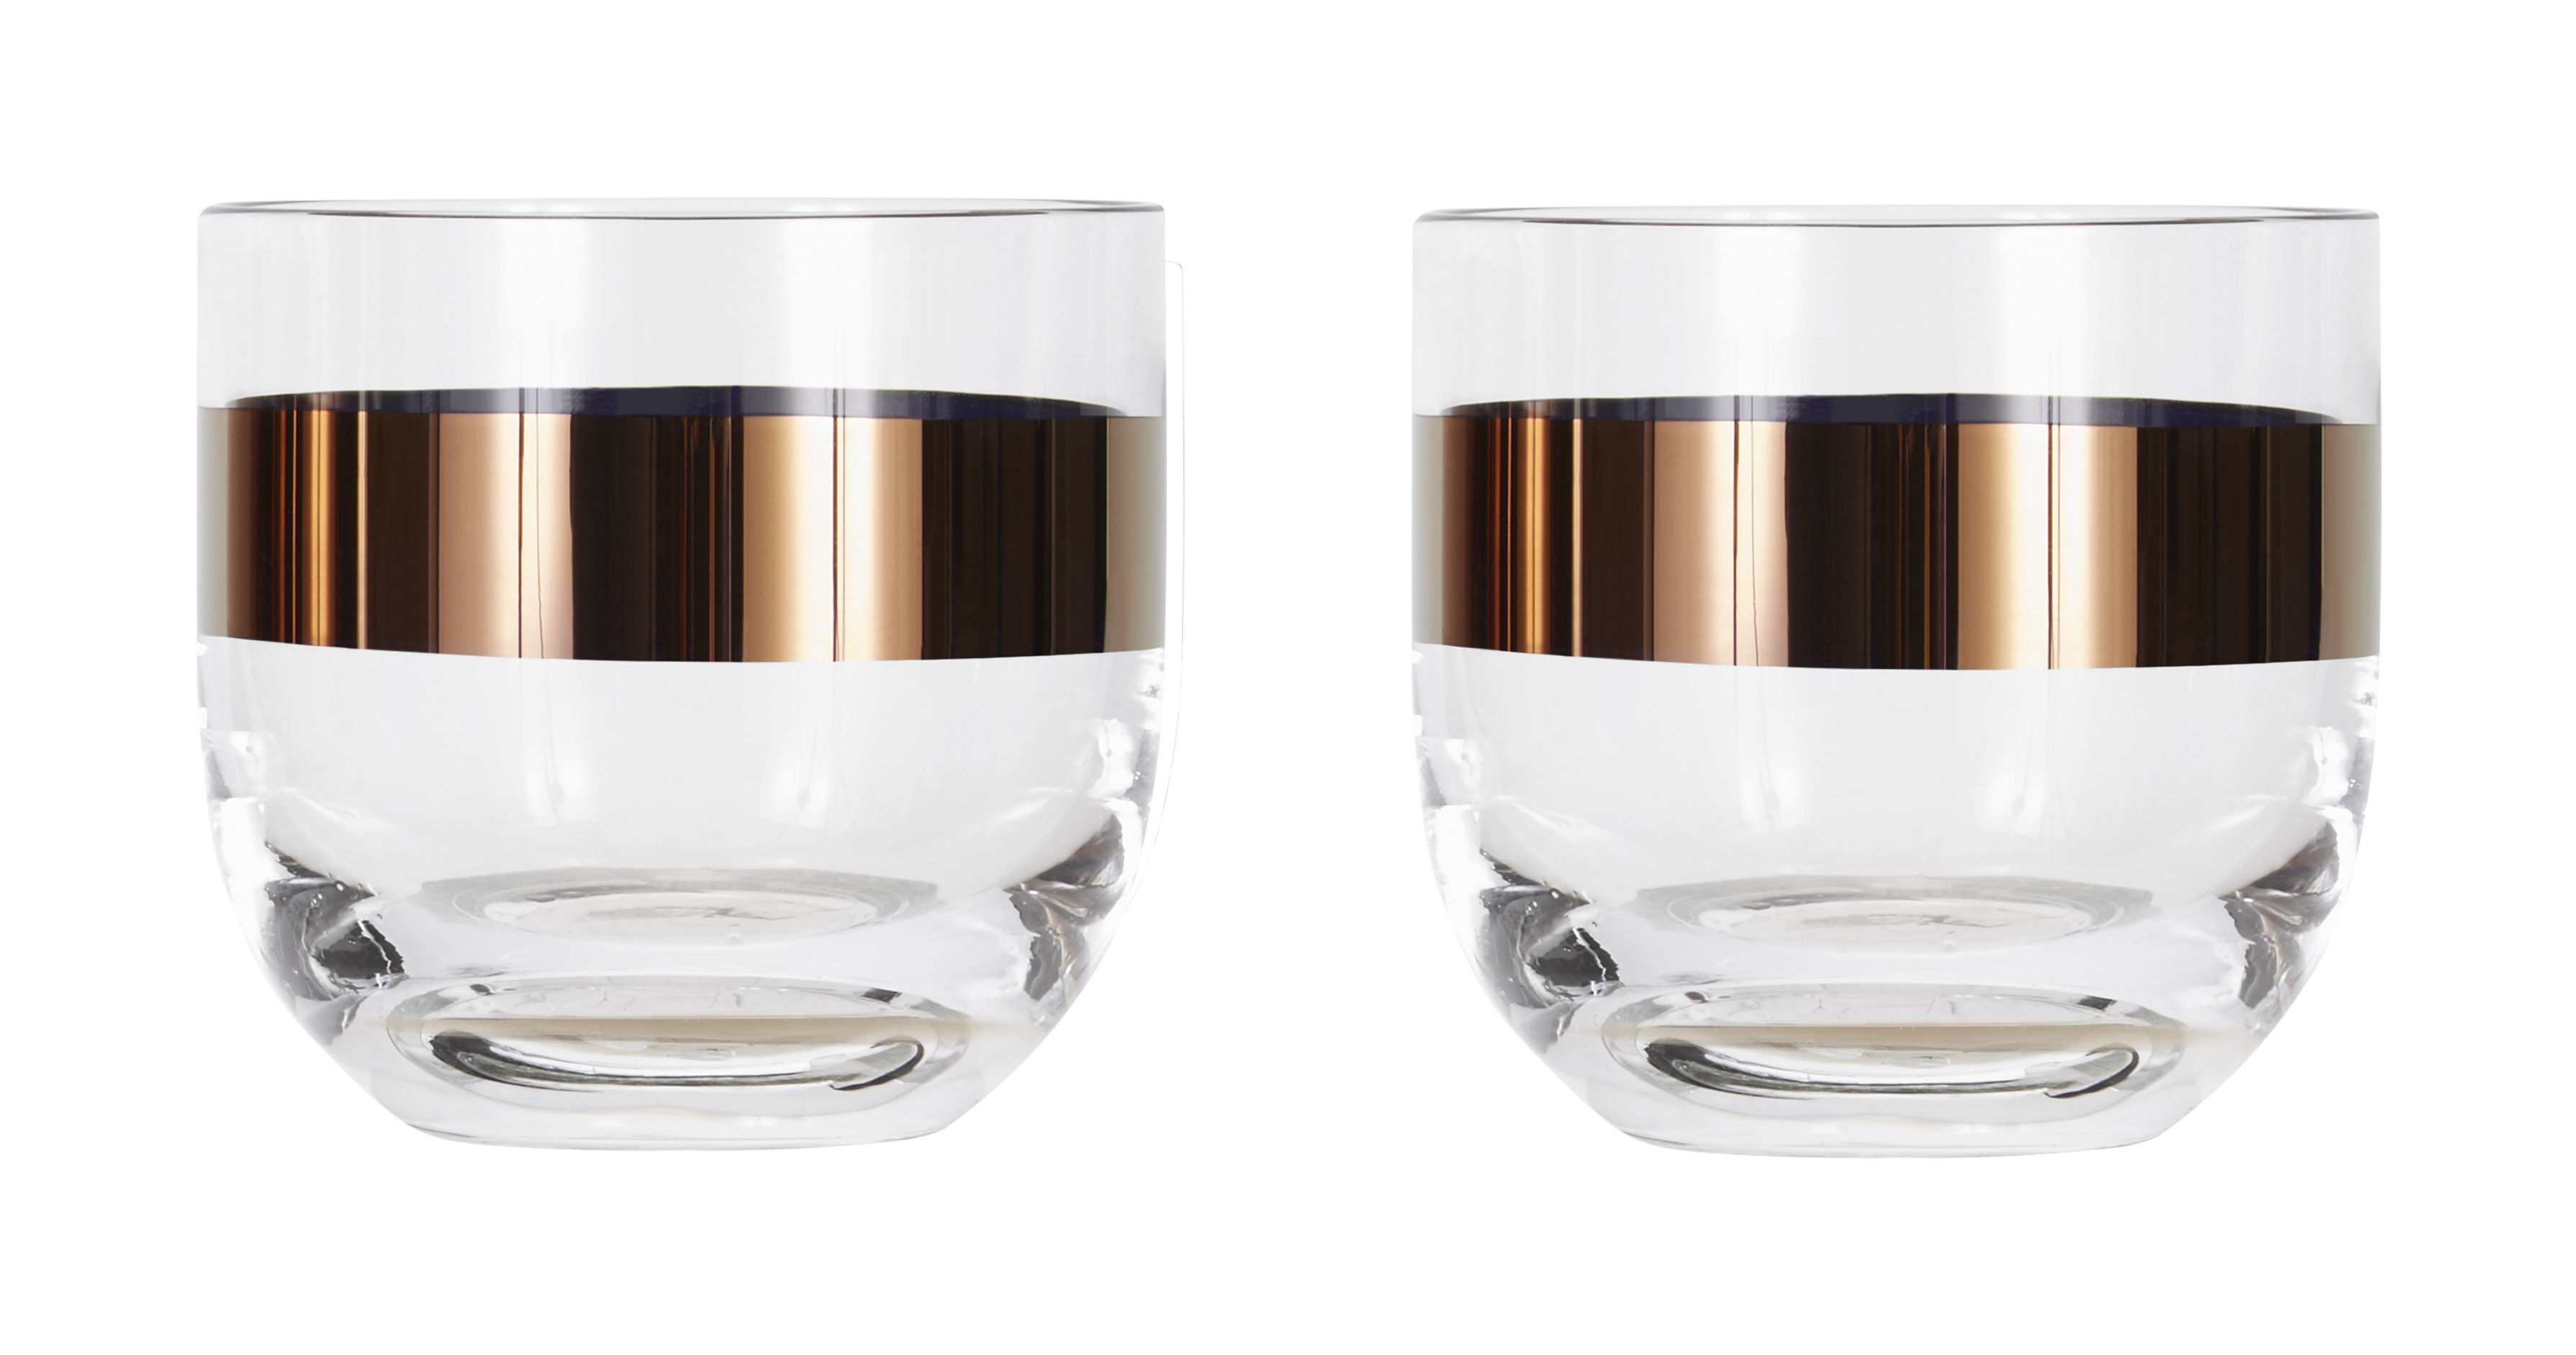 Tableware - Wine Glasses & Glassware - Tank Whisky glass - Set of 2 by Tom Dixon - Transparent / Copper - Mouth blown glass